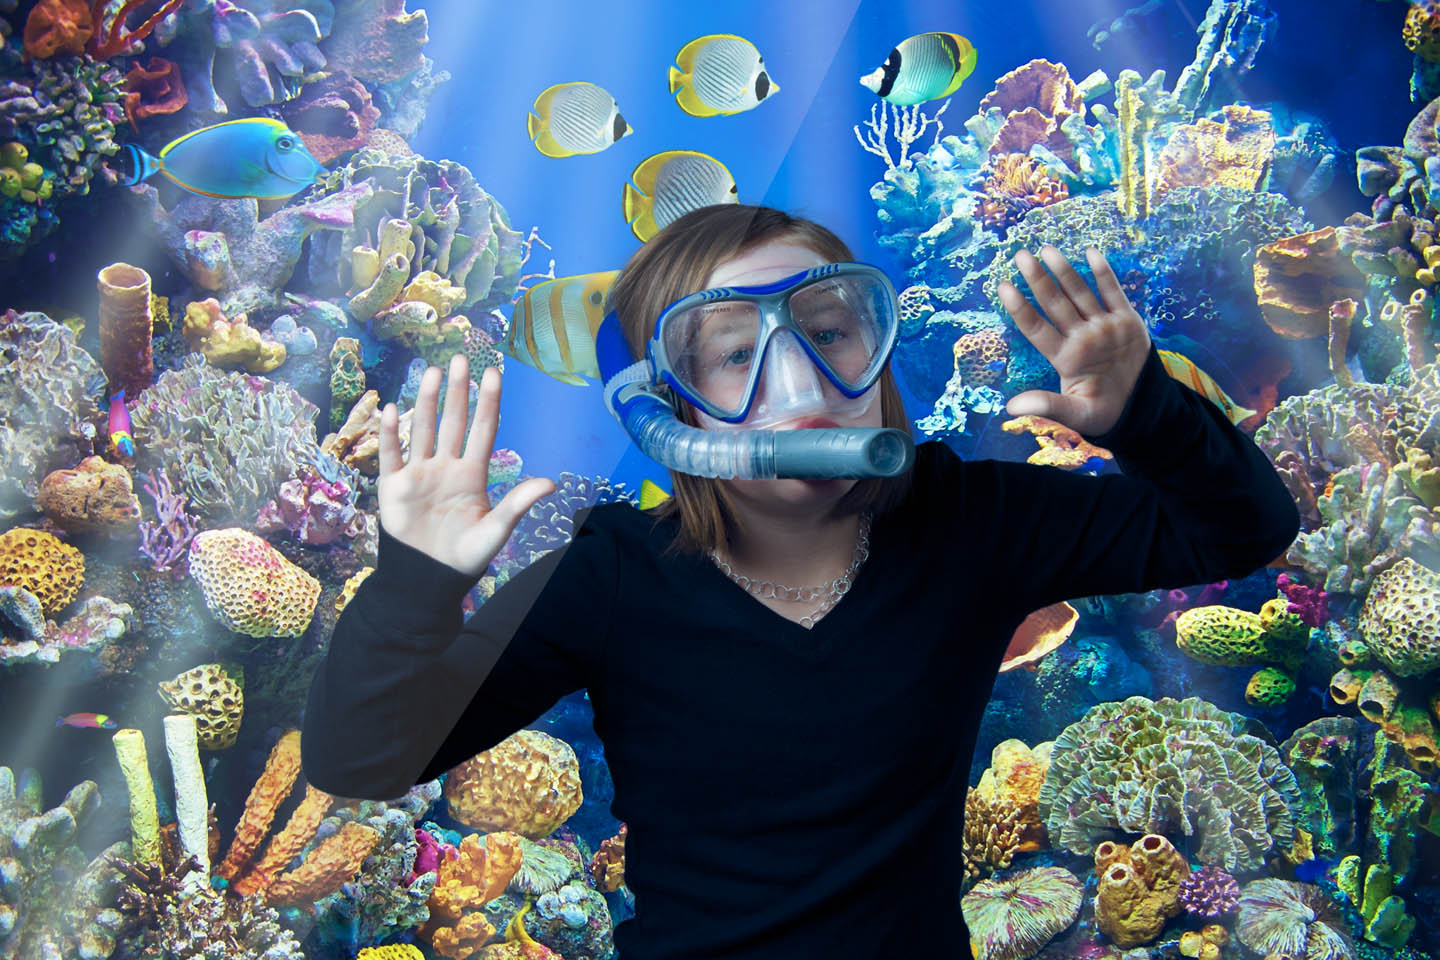 Photoshopped into an aquarium